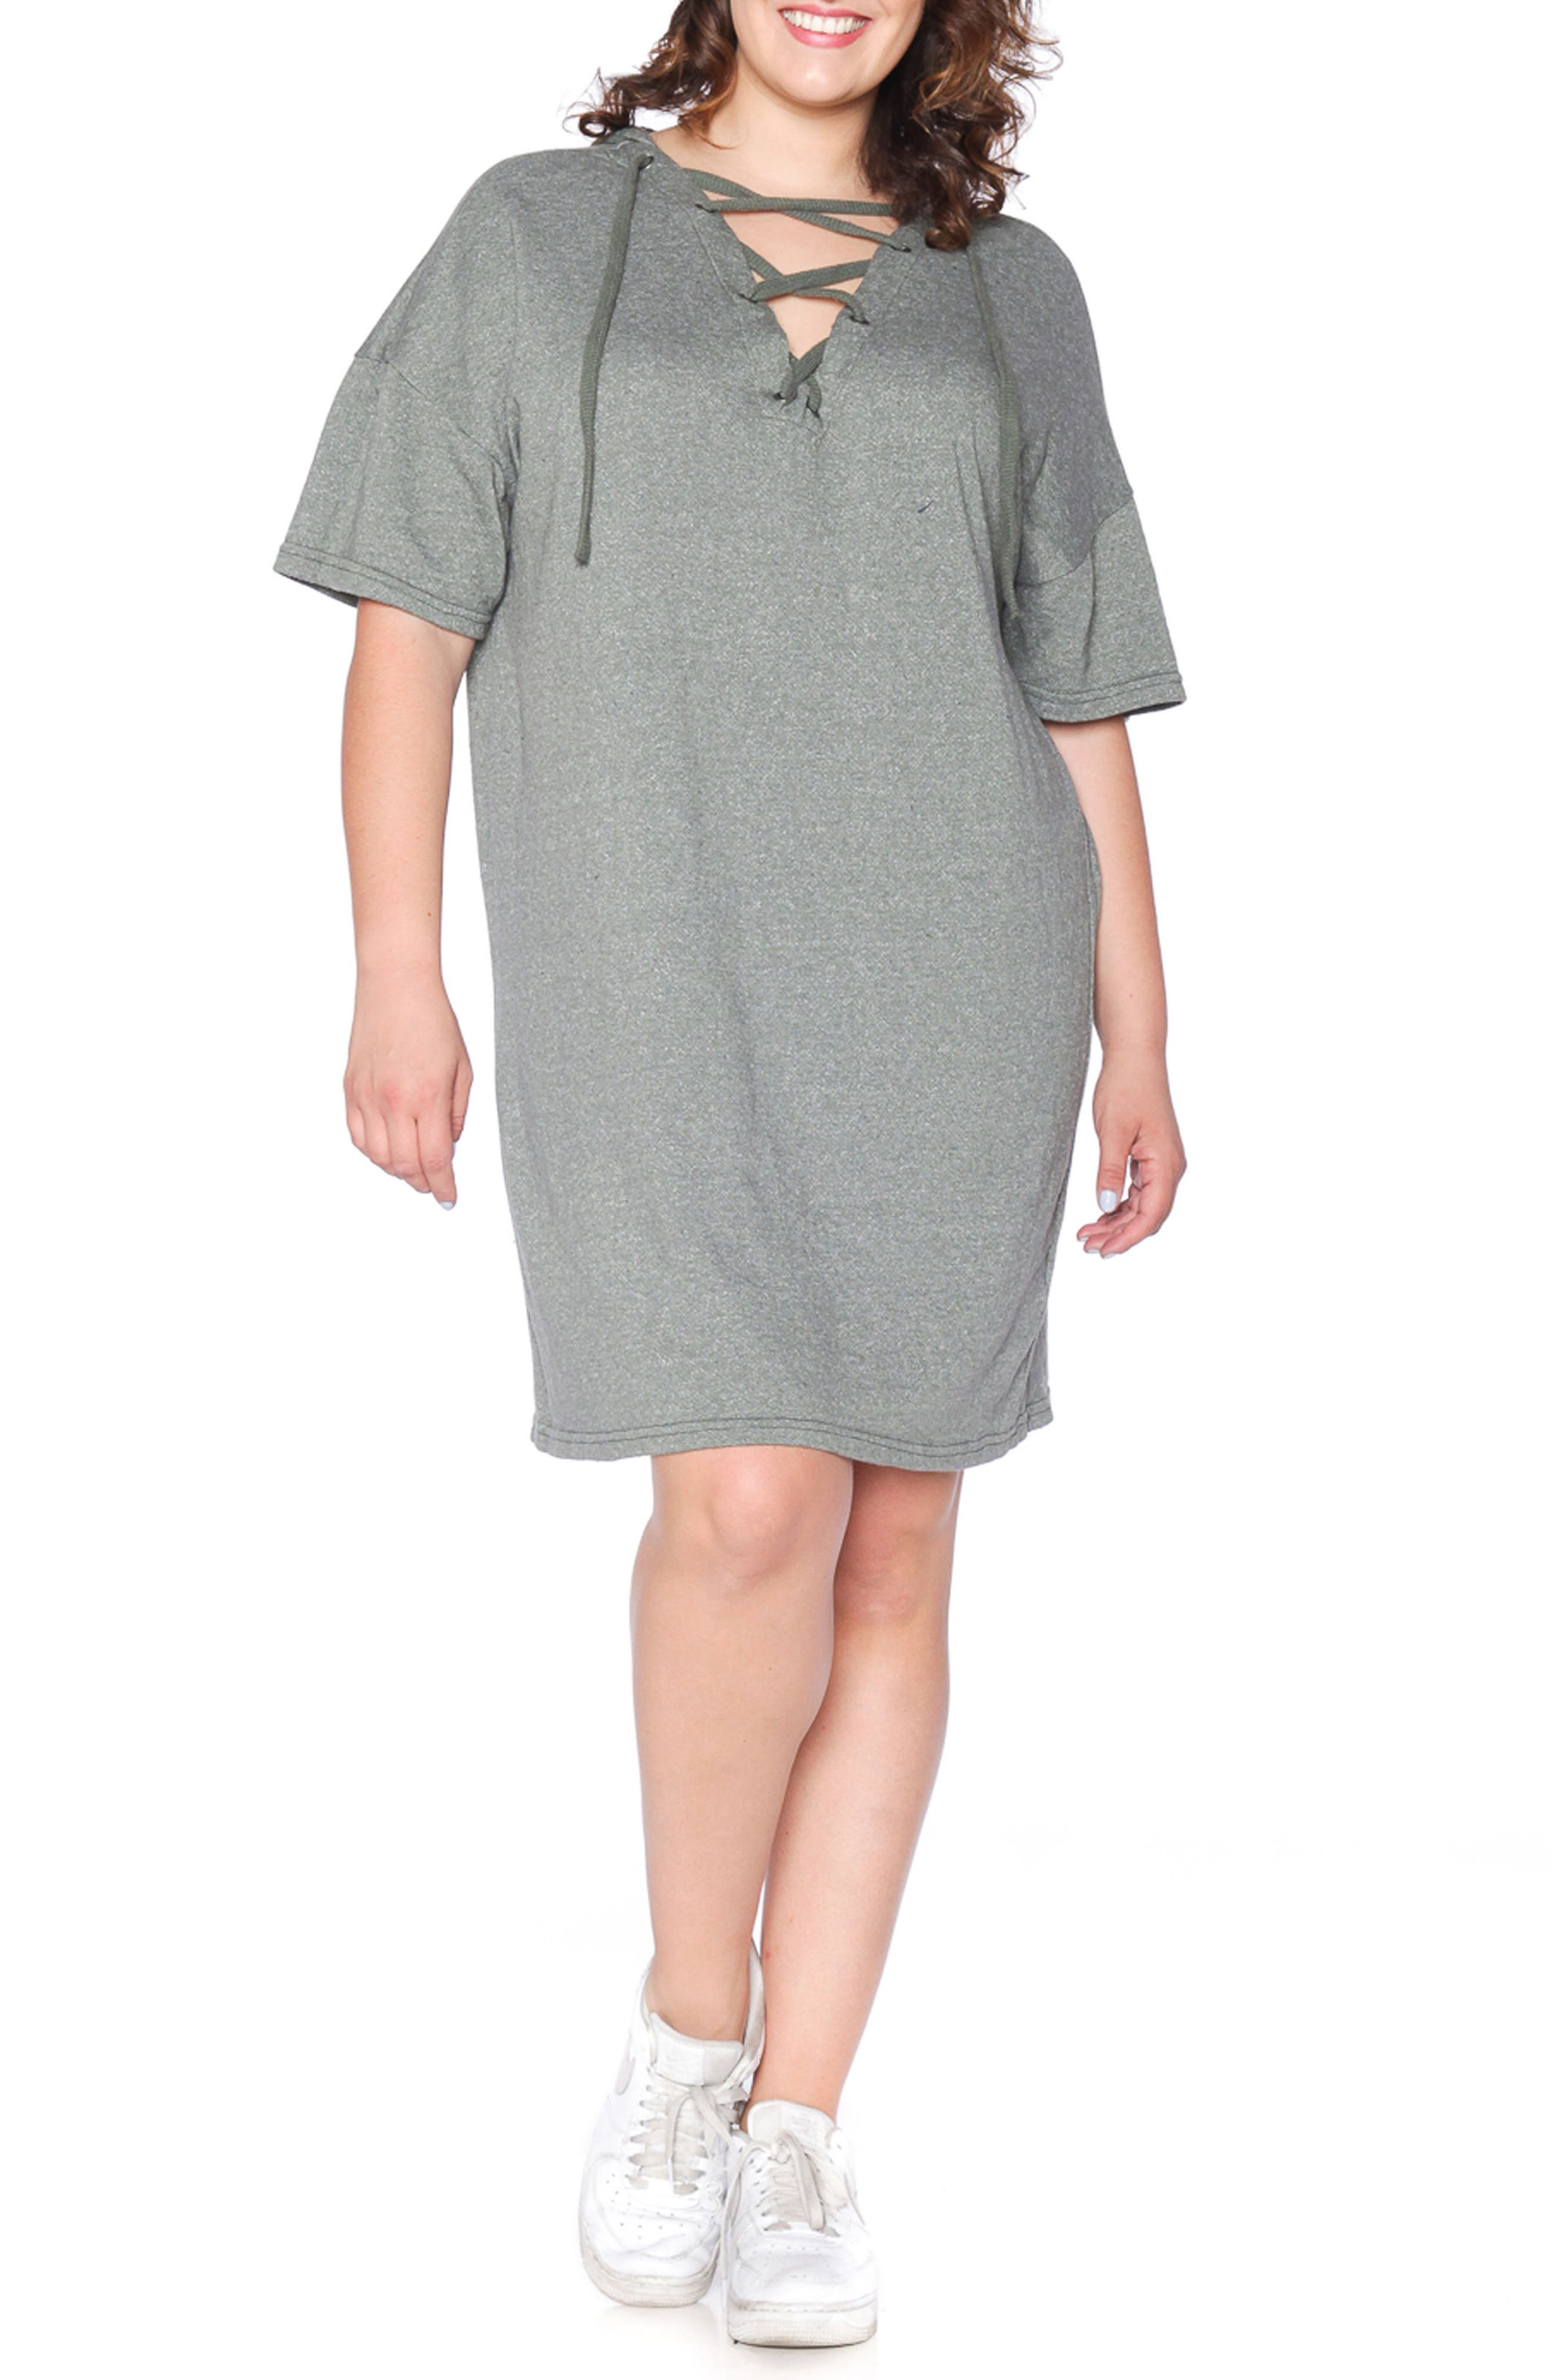 SLINK Jeans Lace-Up Hoodie Dress (Plus Size)